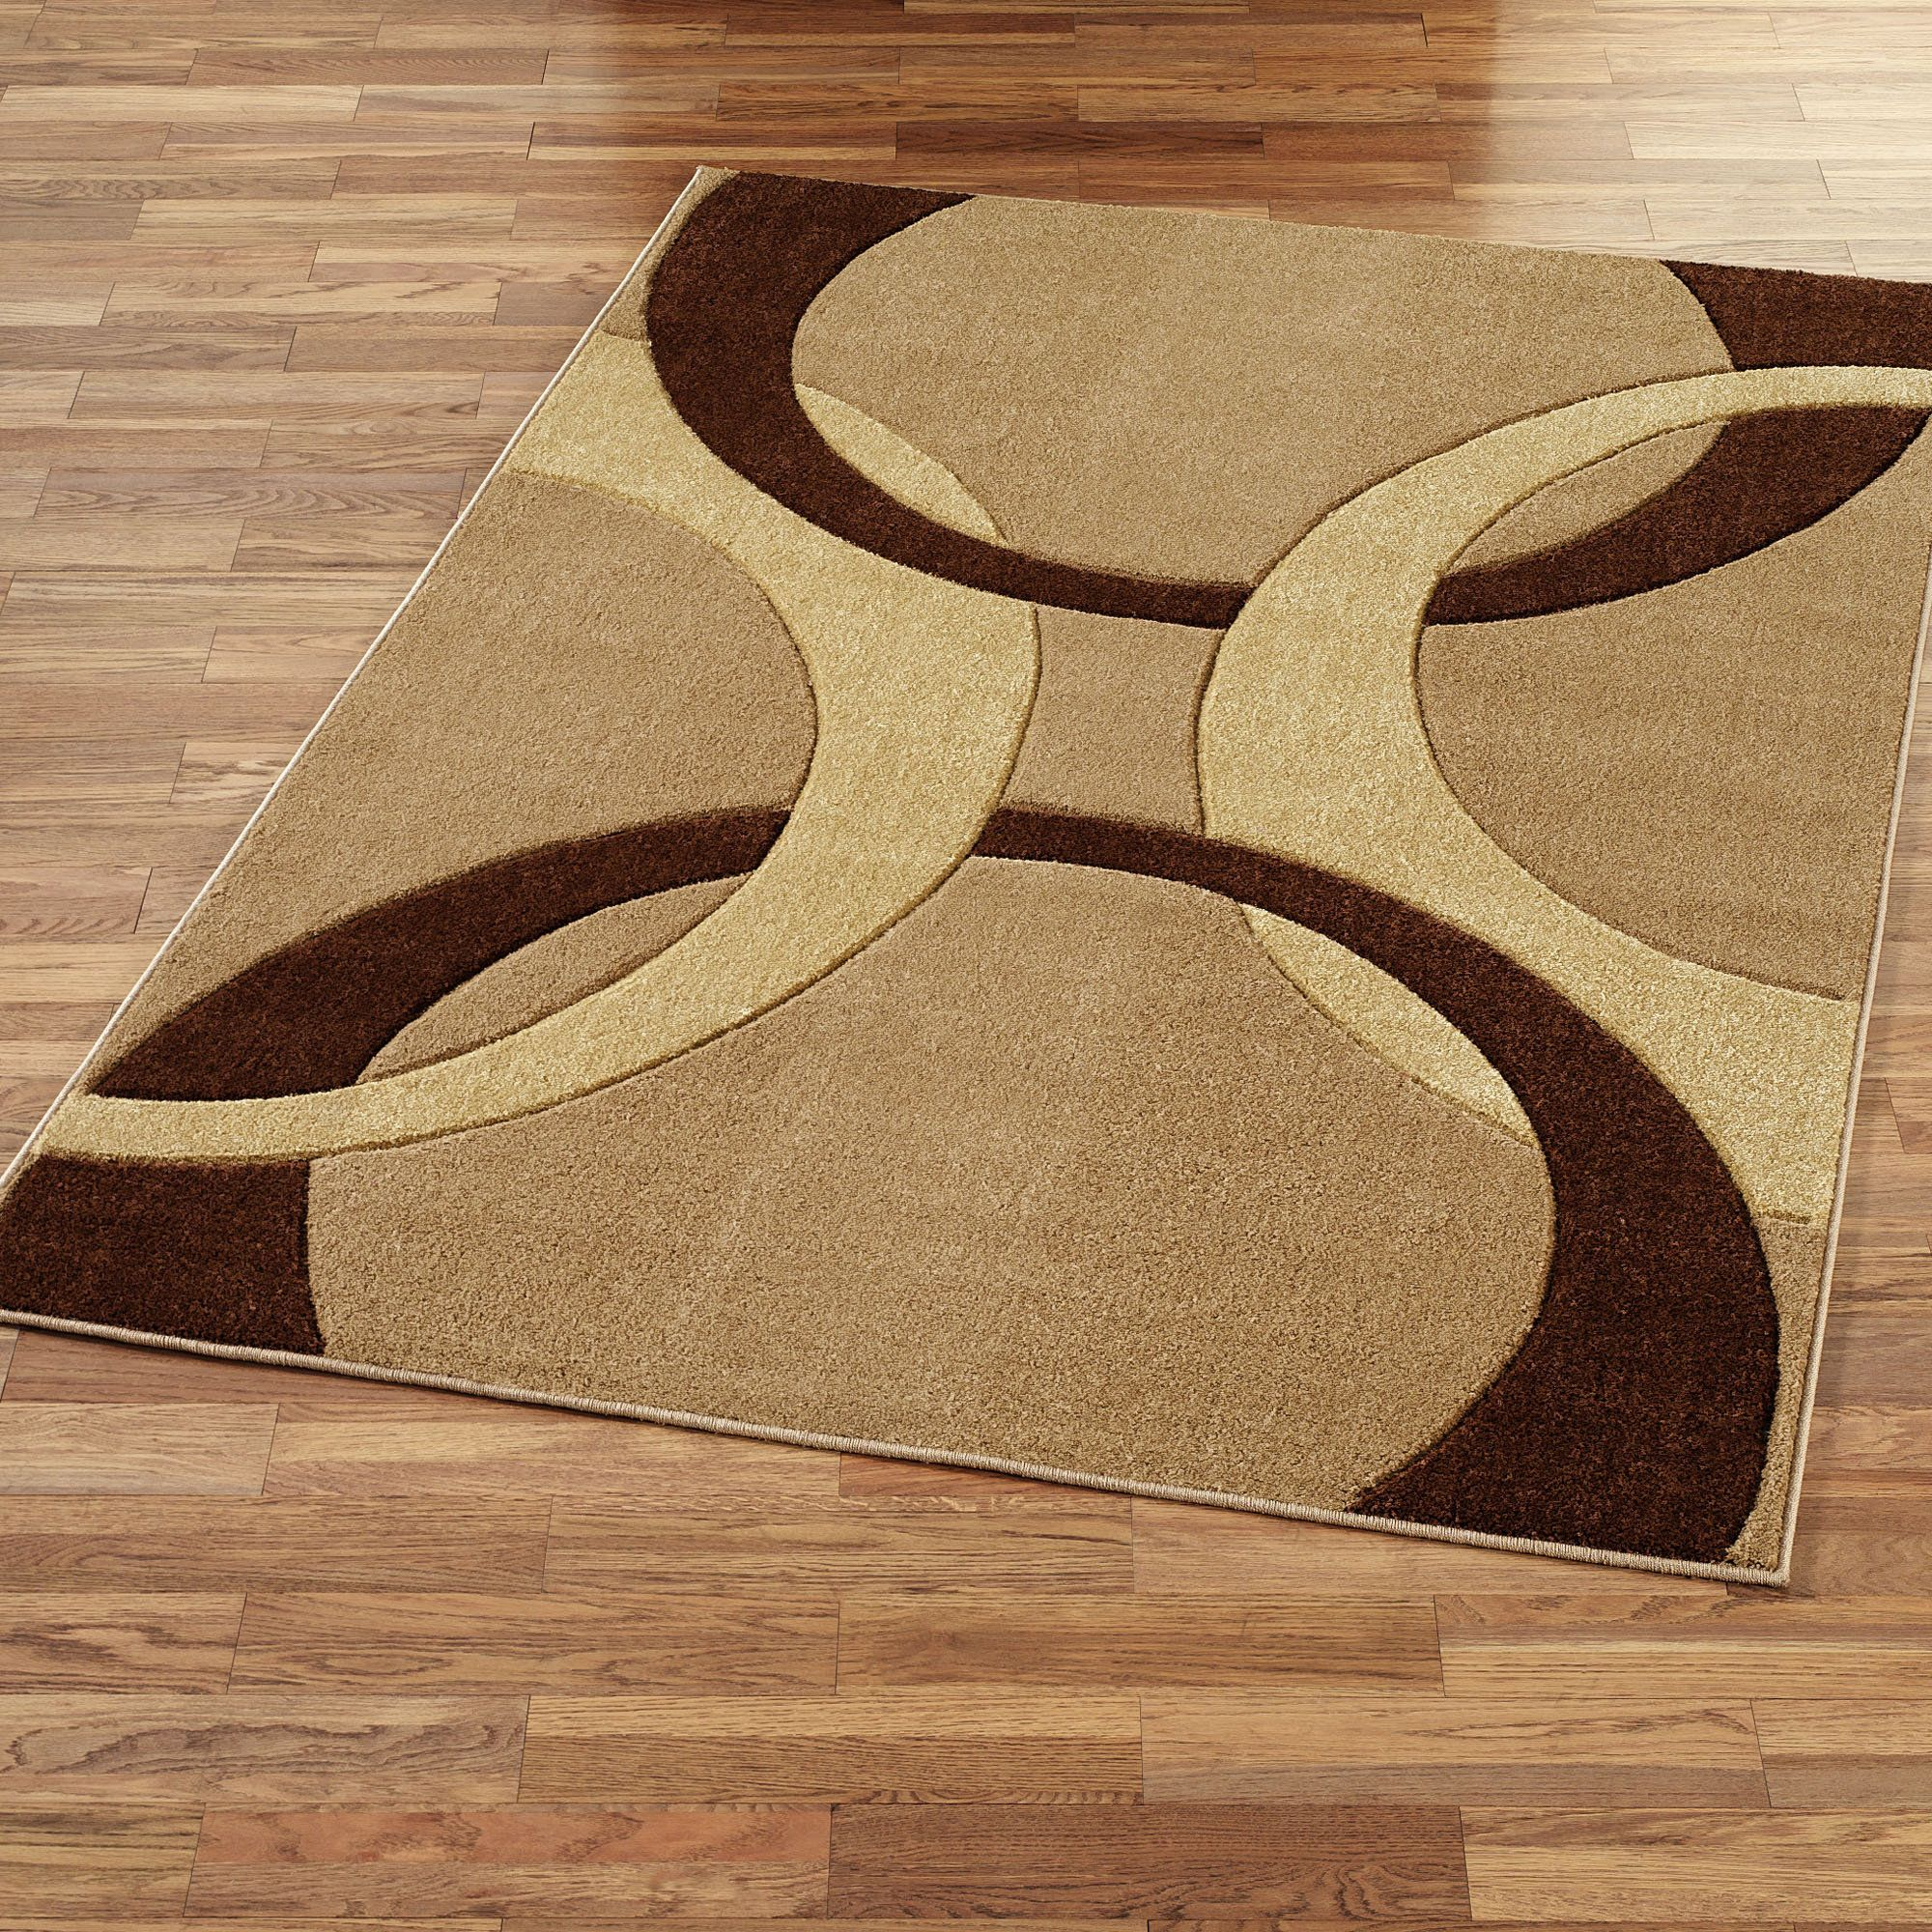 Brown And Gold Area Rug Area Rug Design Rug Design Patterns Area Rugs